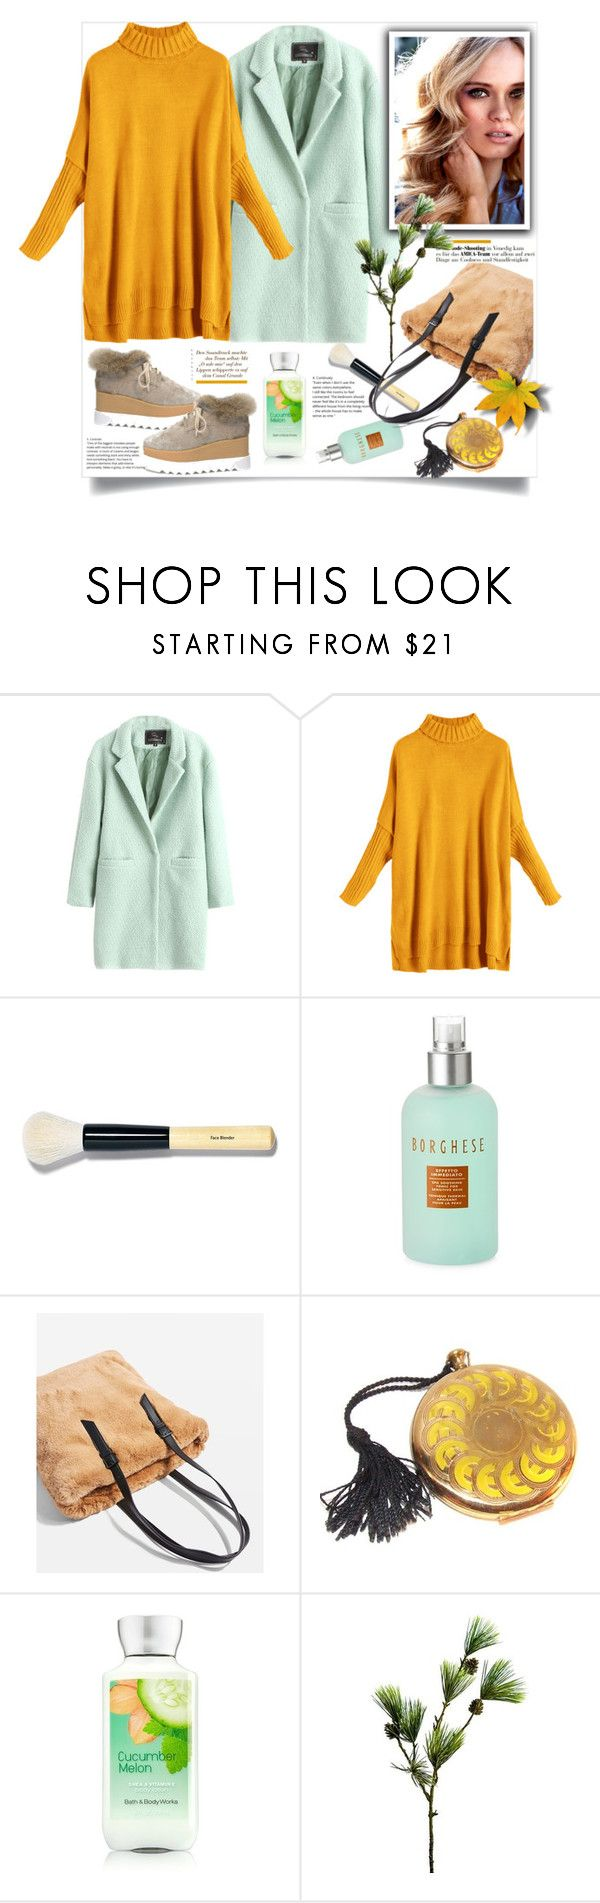 """Sweater Dress"" by natalyapril1976 on Polyvore featuring Mode, Bobbi Brown Cosmetics, Borghese, Topshop und Wyld Home"